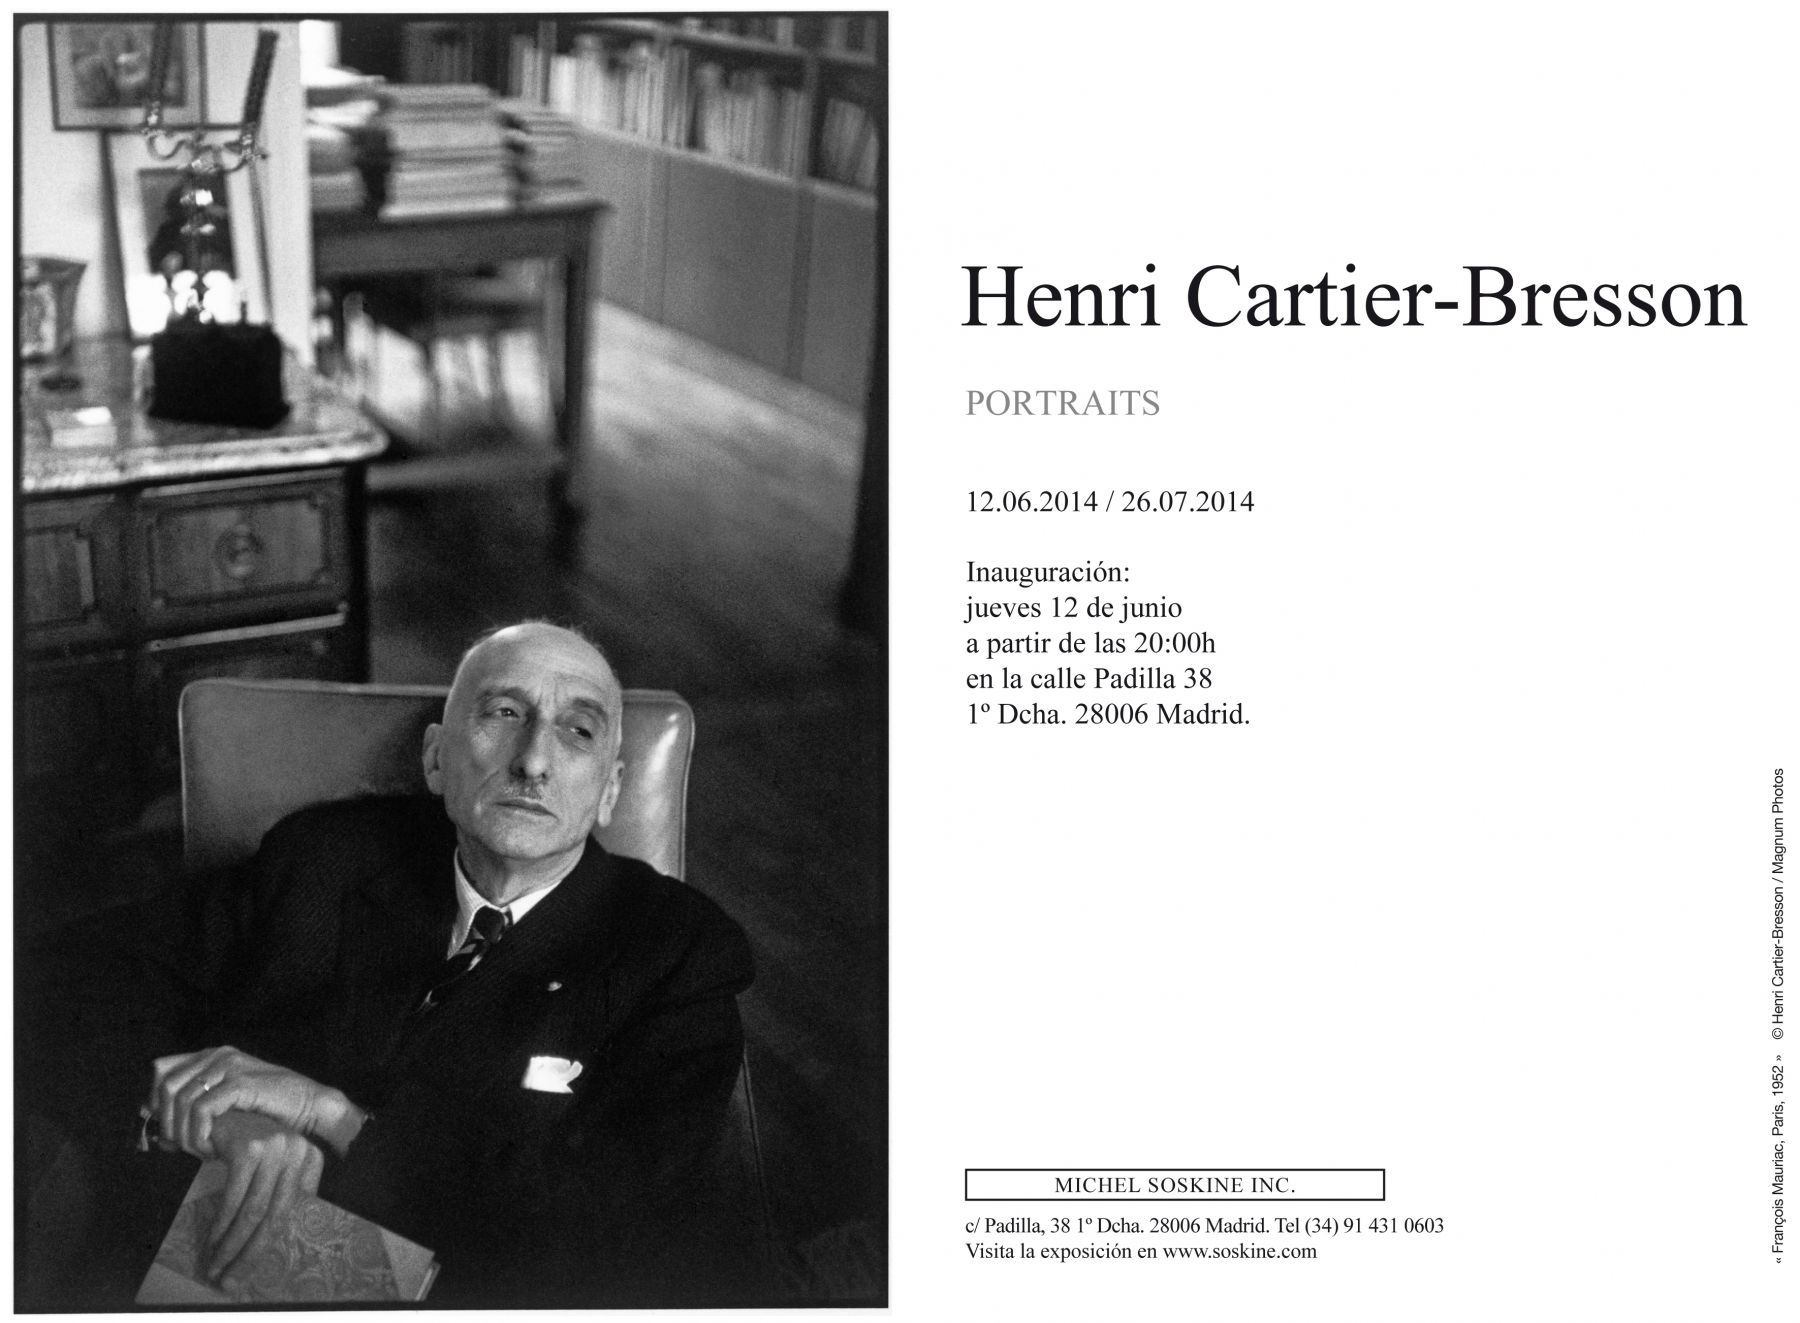 HENRI CARTIER-BRESSON, Portraits